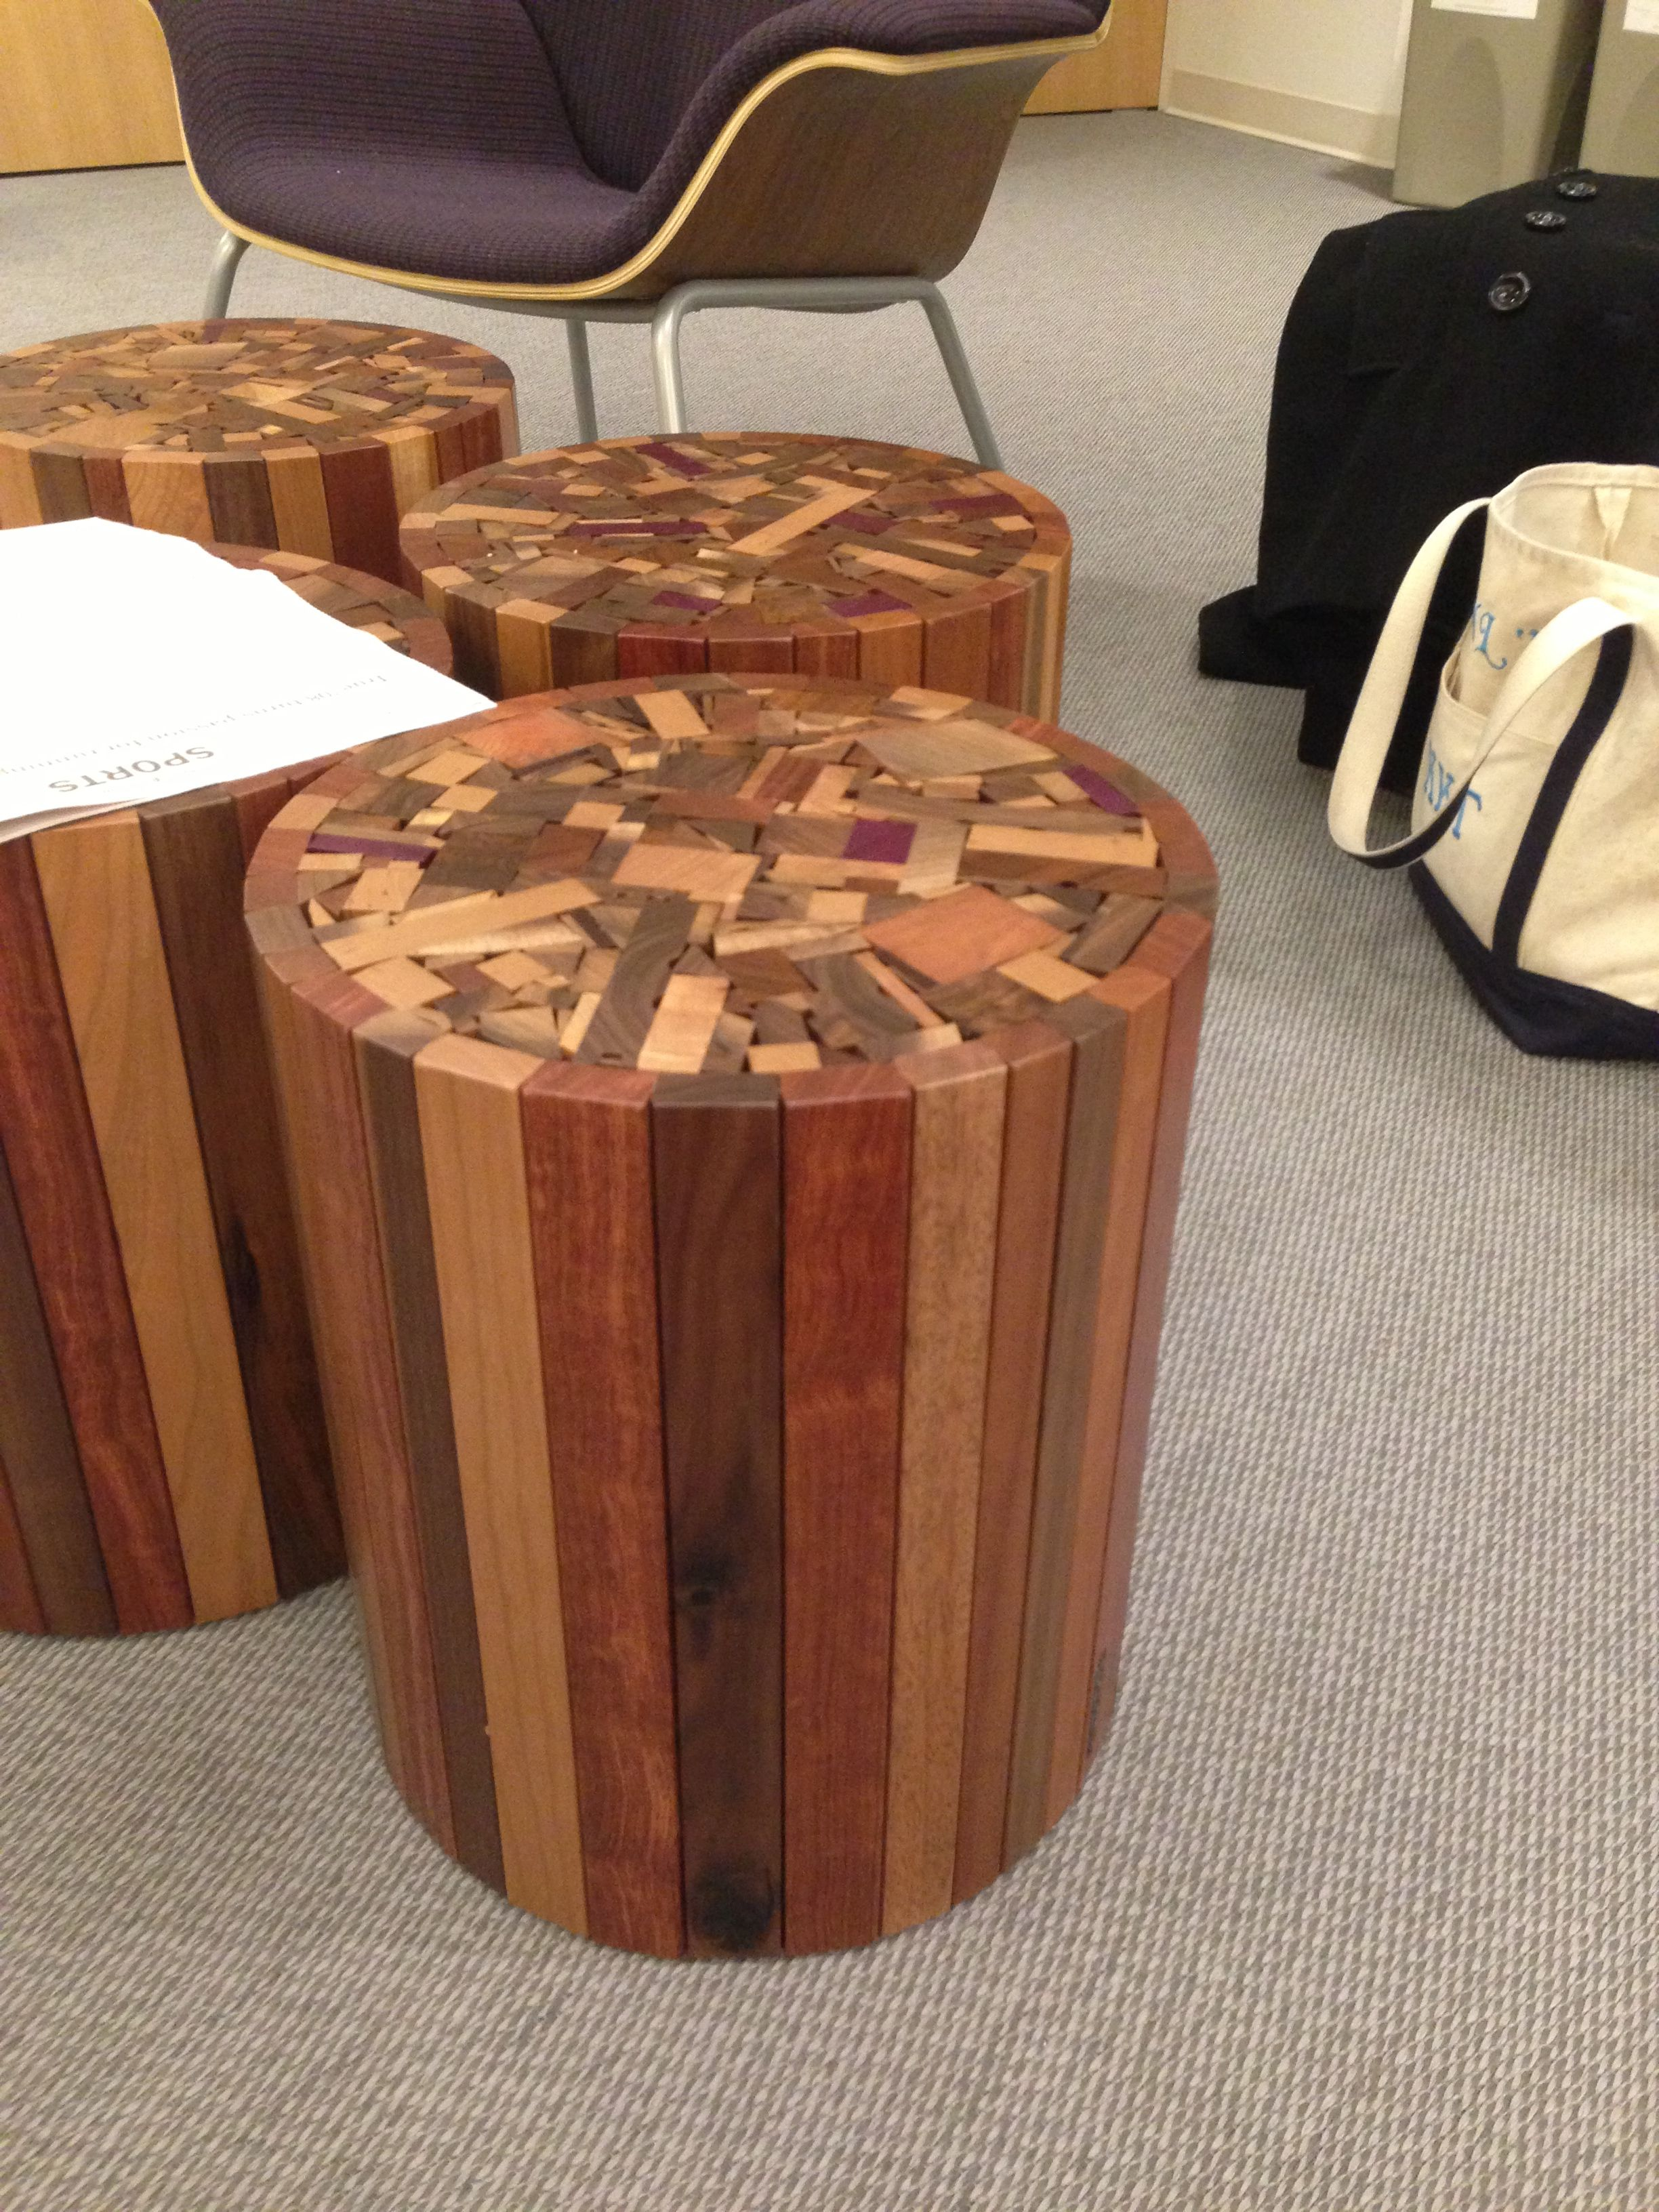 Cool Side Table! Woodshop Project For The Future.